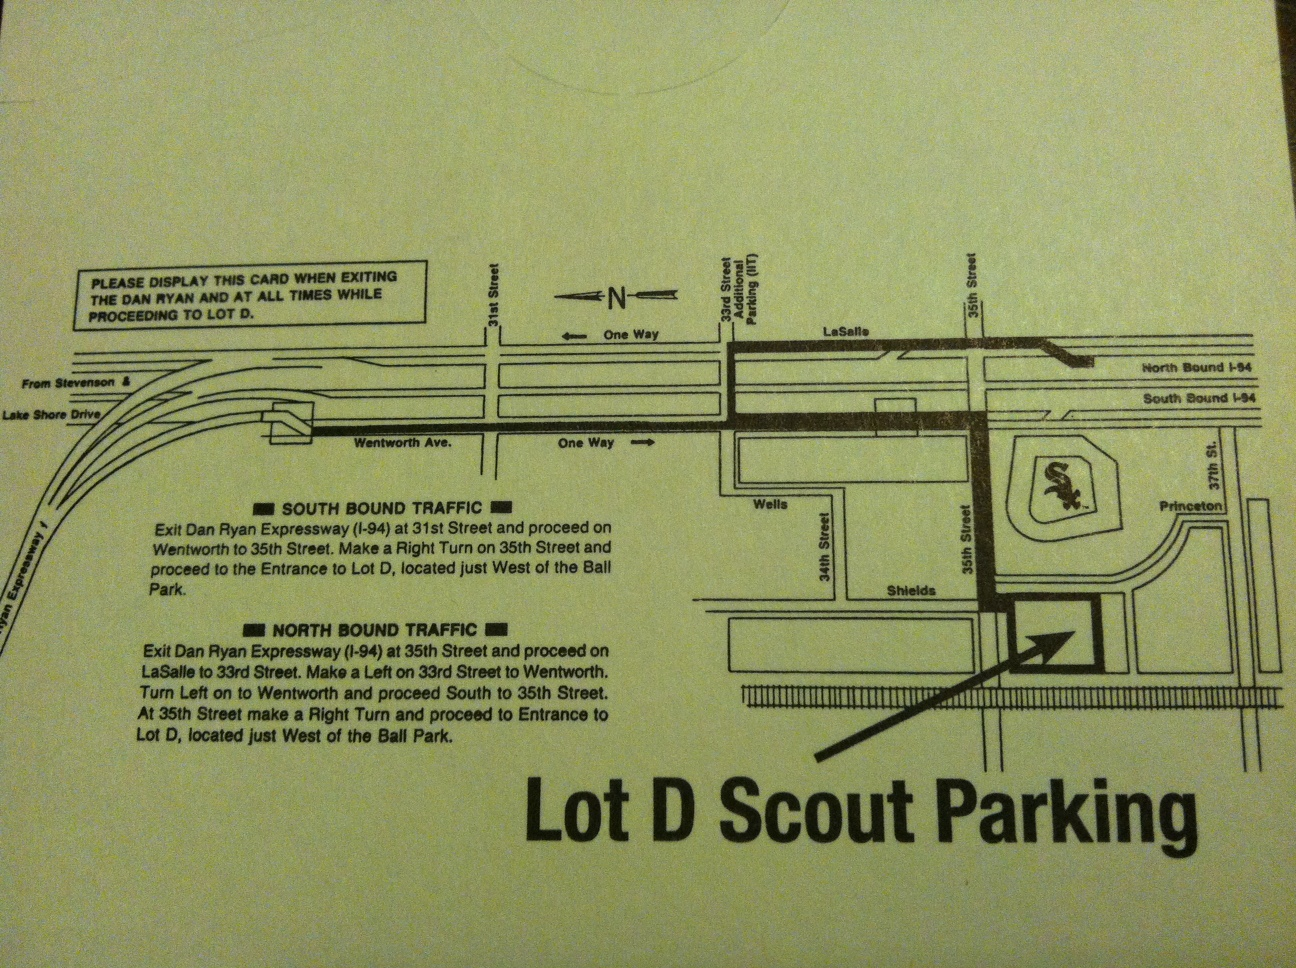 Chicago White Sox Parking Lot D Map - SpotHero Blog